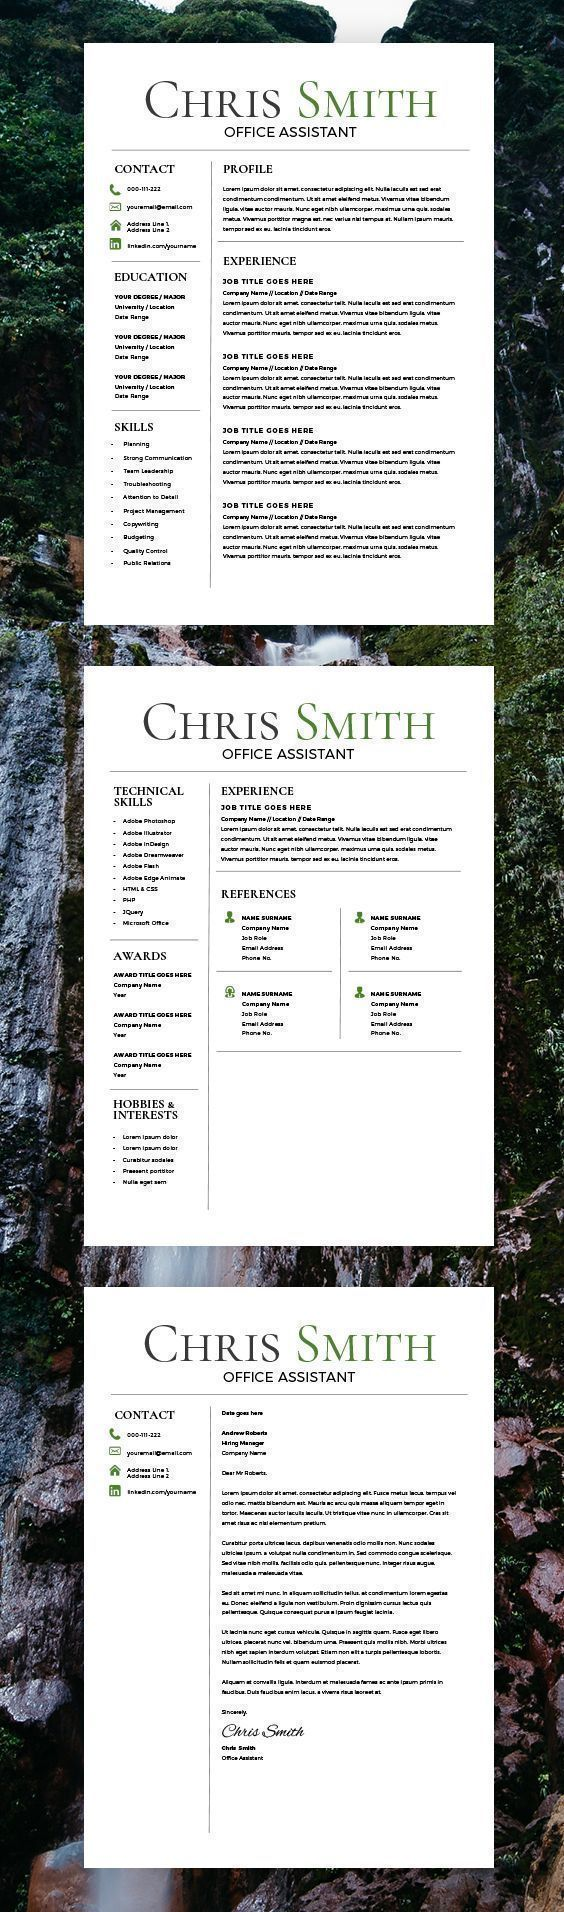 Chronological Resume Samples%0A Trending Resume Template  CV Template  Free Cover Letter  MS Word Mac PC